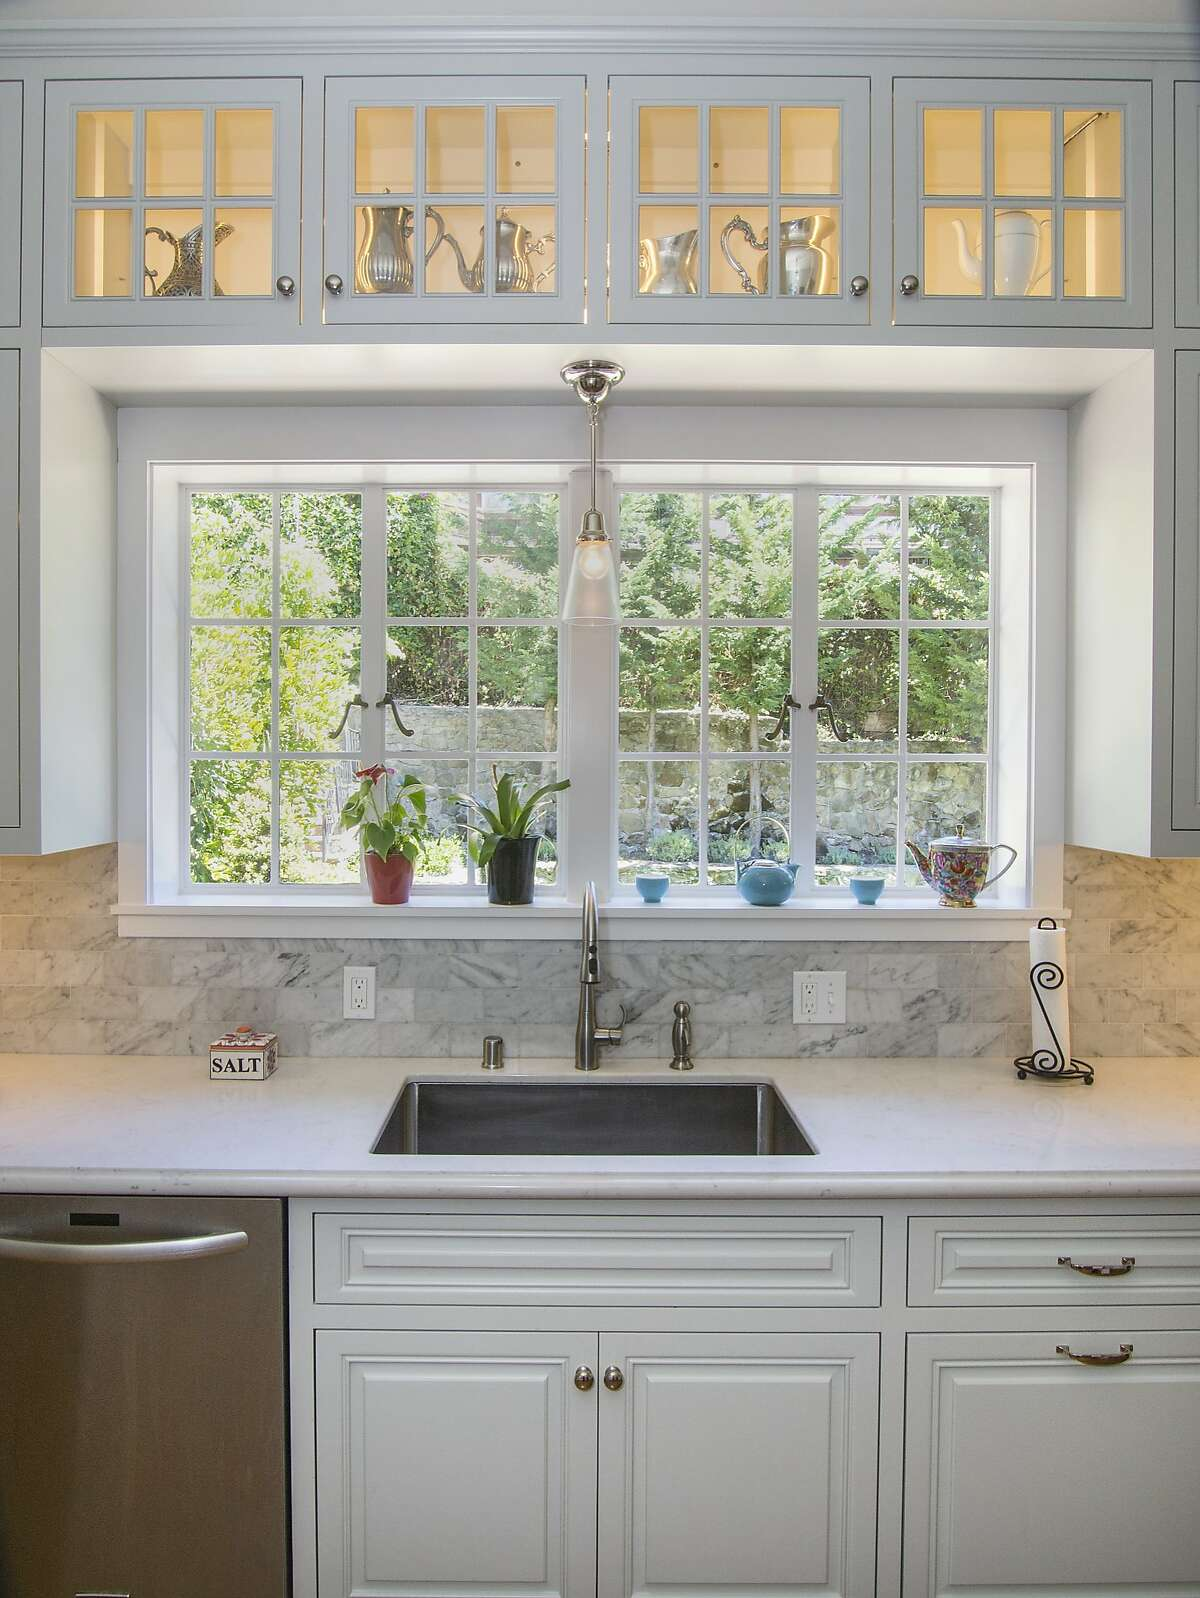 The Morse House in Rockridge had its kitchen updated, but the home's place on Oakland's historical registry was kept in mind. Pendant lights, rather than recessed lighting, were used.